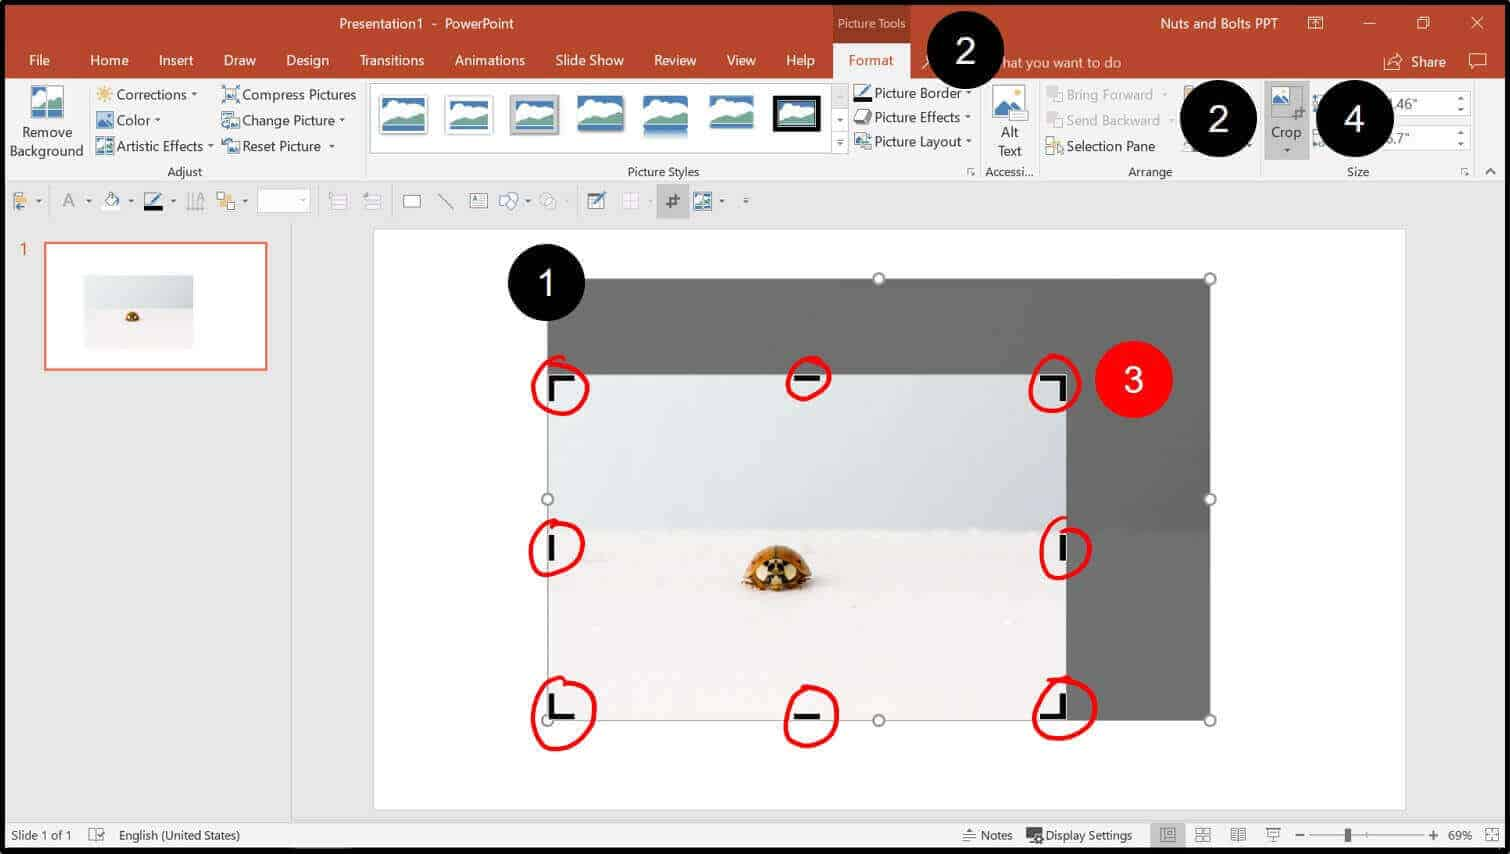 To crop an image in PowerPoint, from the Picture tools format tab click the Crop command